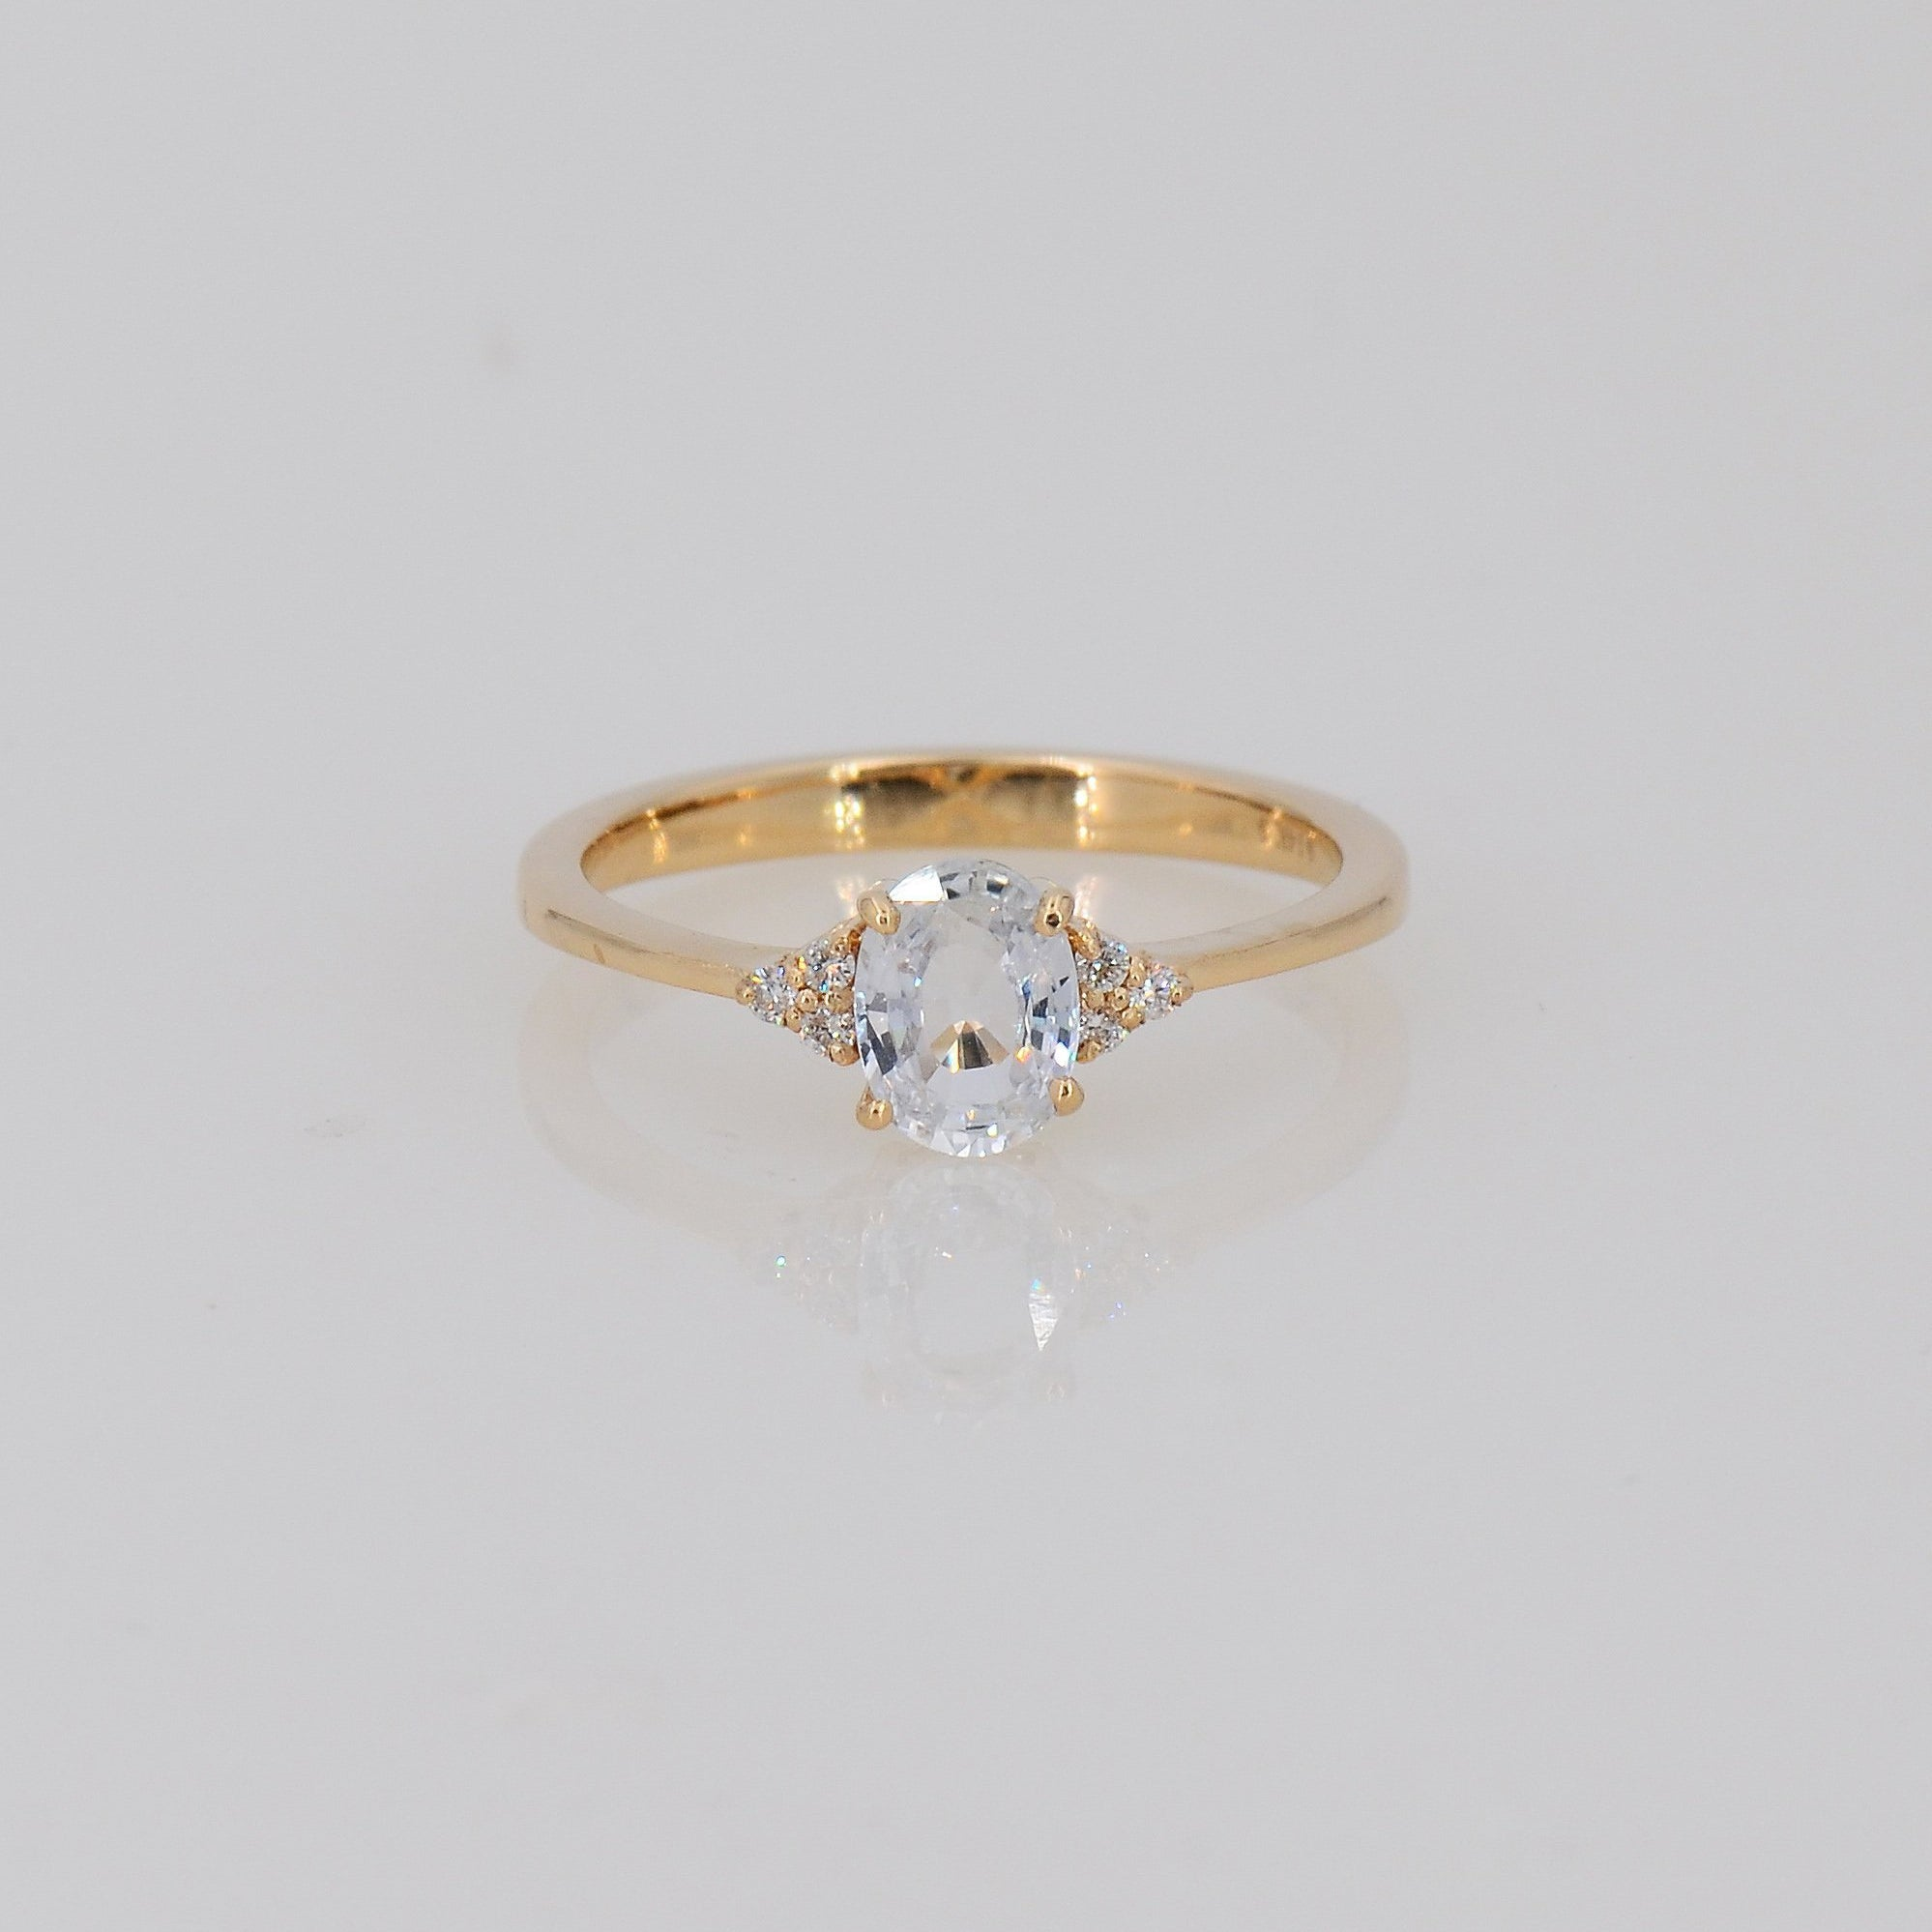 White Sapphire Ring, Genuine Gemstone ring